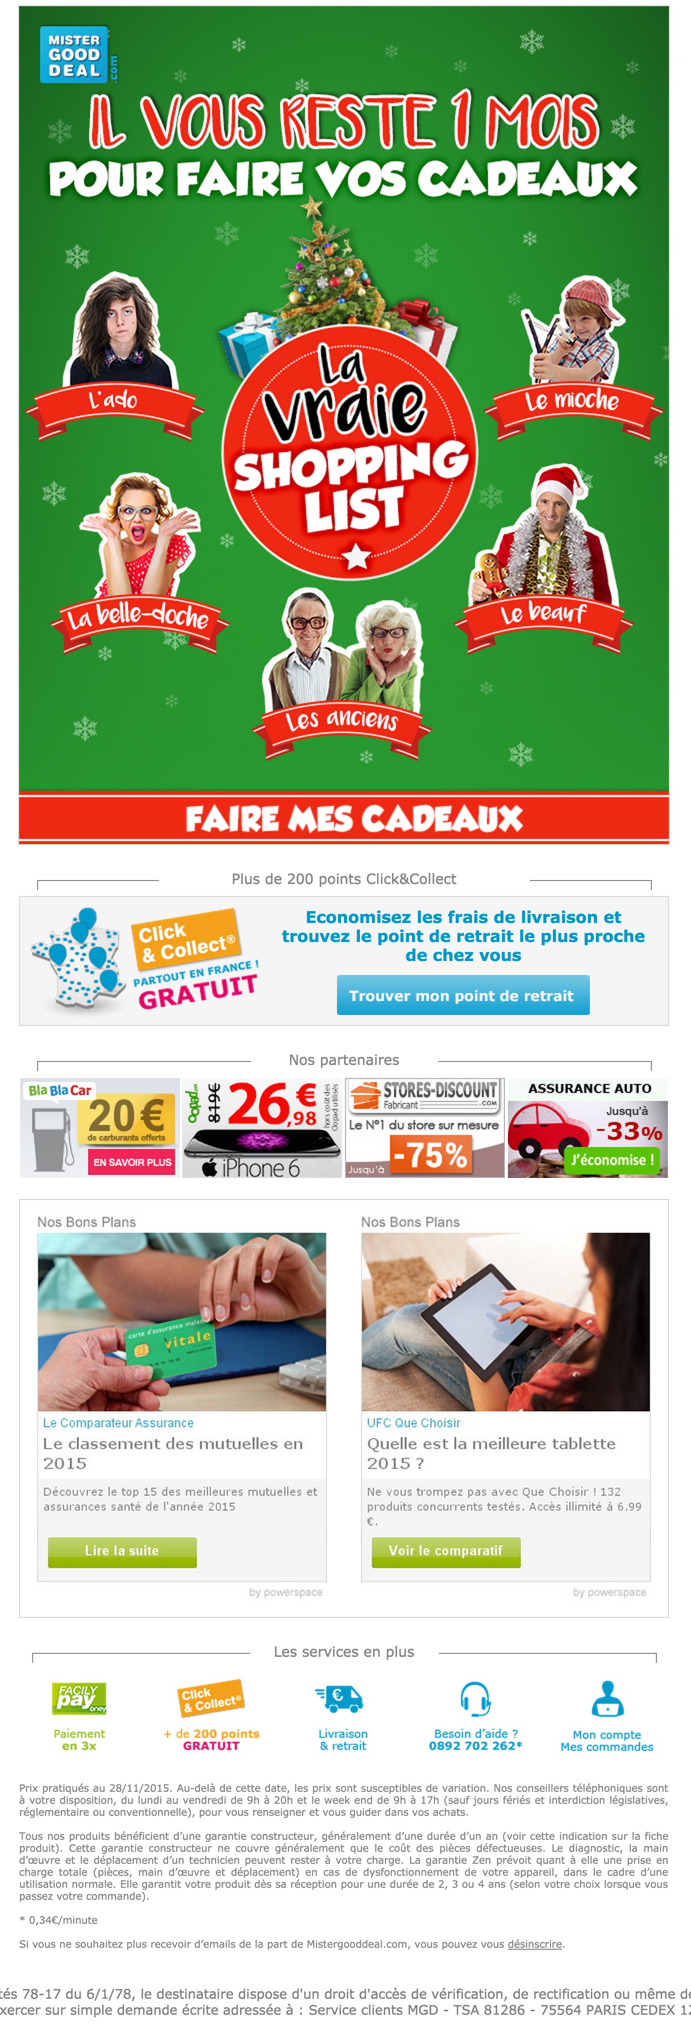 newsletter mister good deal du 24 novembre 2015